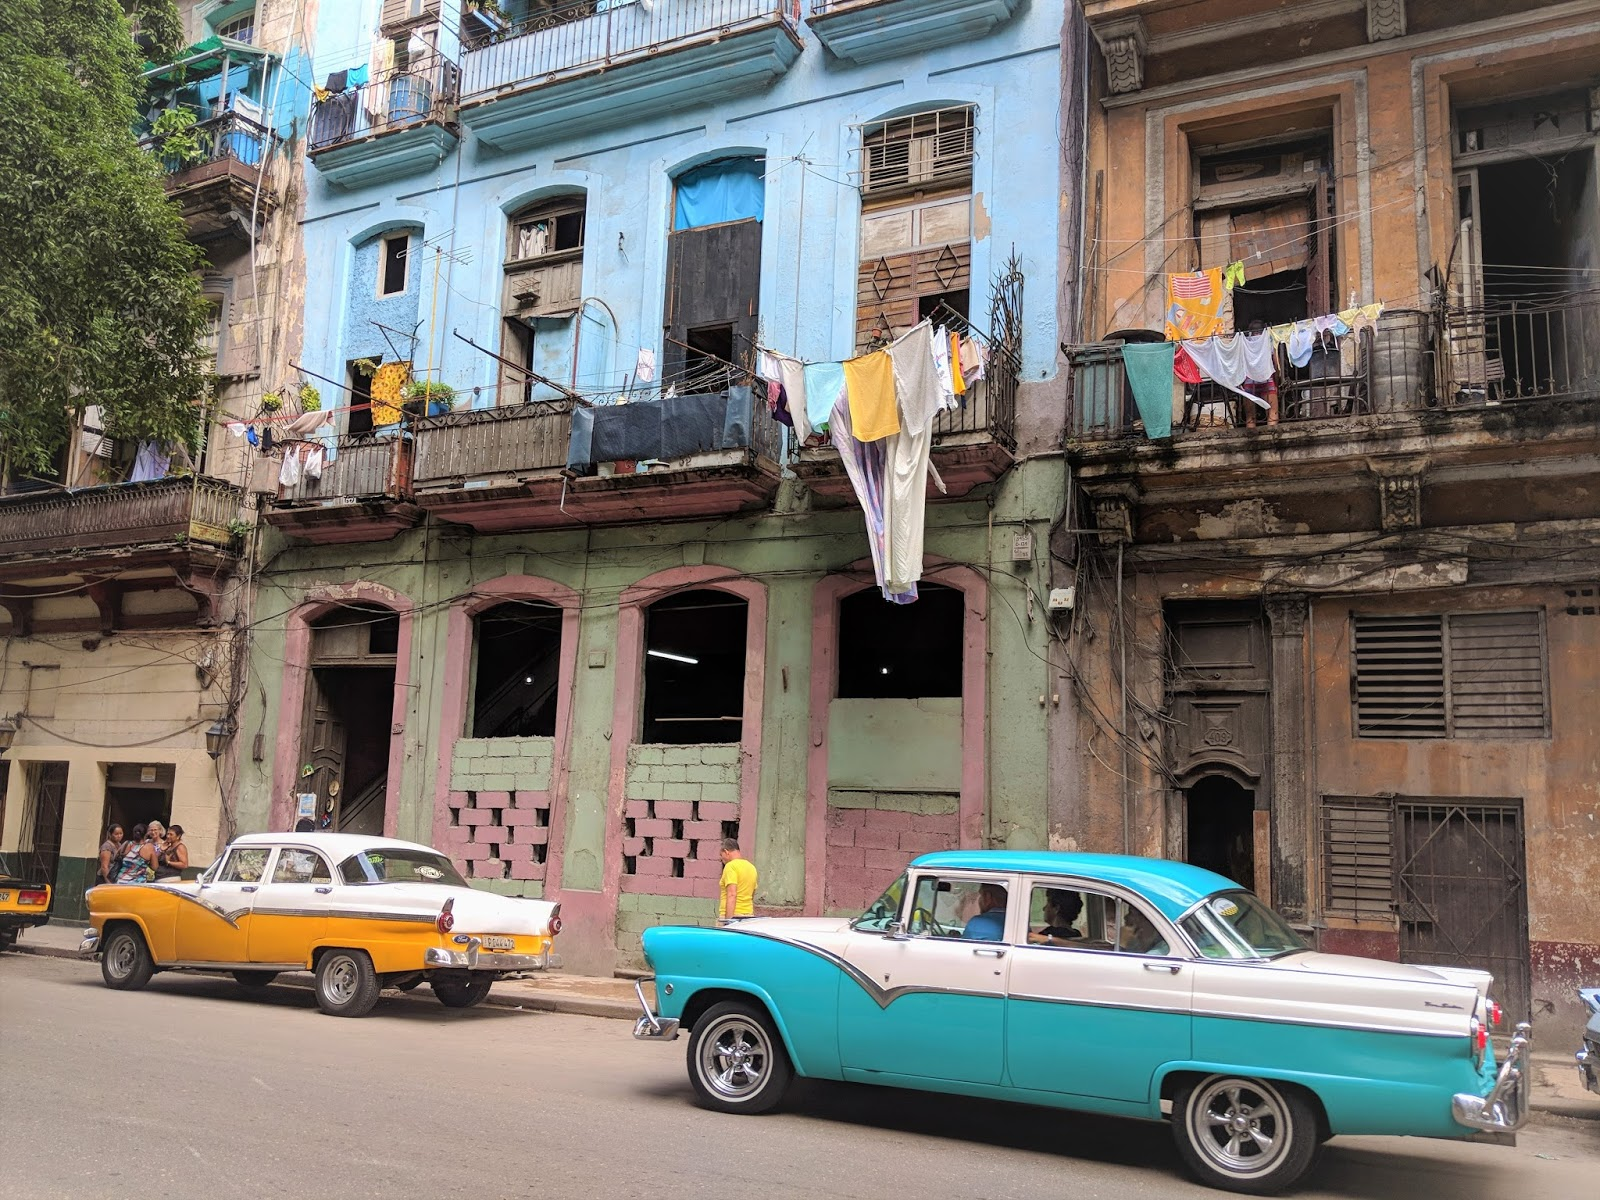 Cuba: A morning in Havana